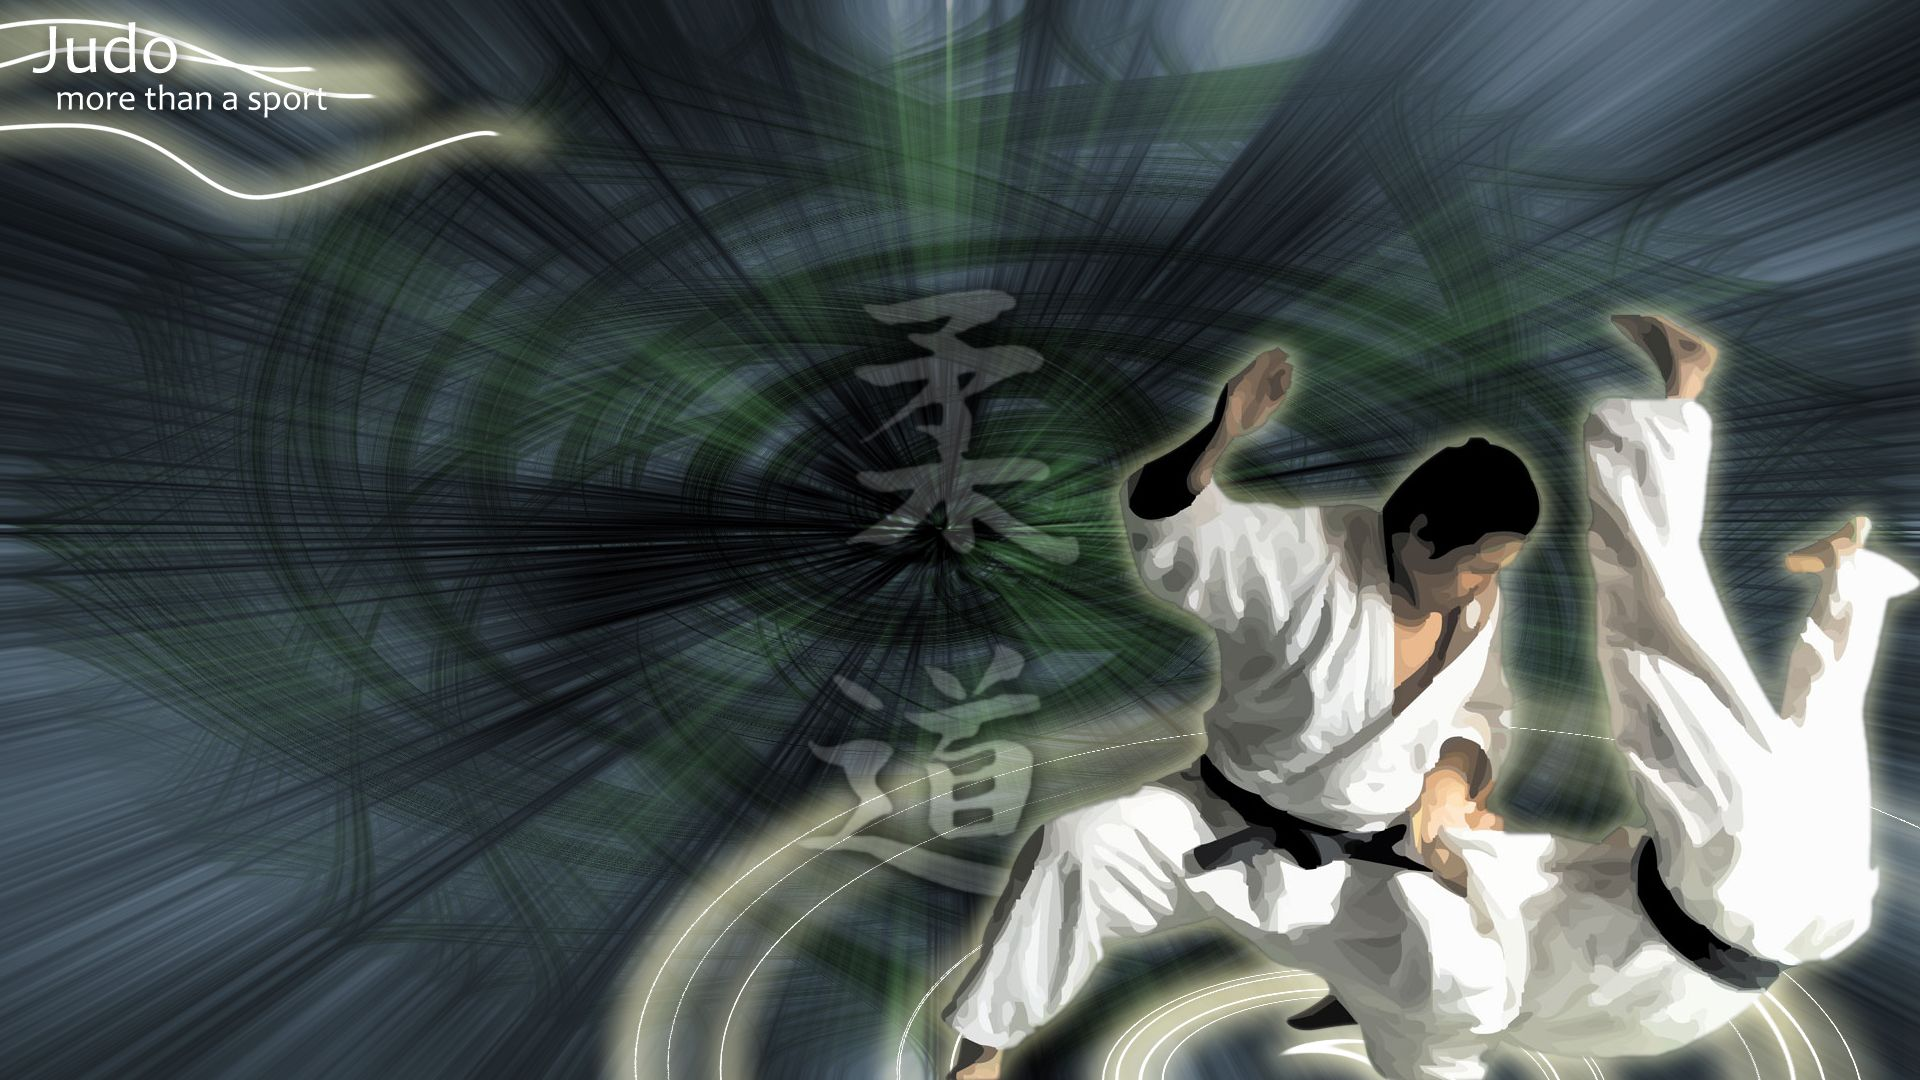 1920x1080 Judo Wallpaper Download ✓ Gadget and PC Wallpaper